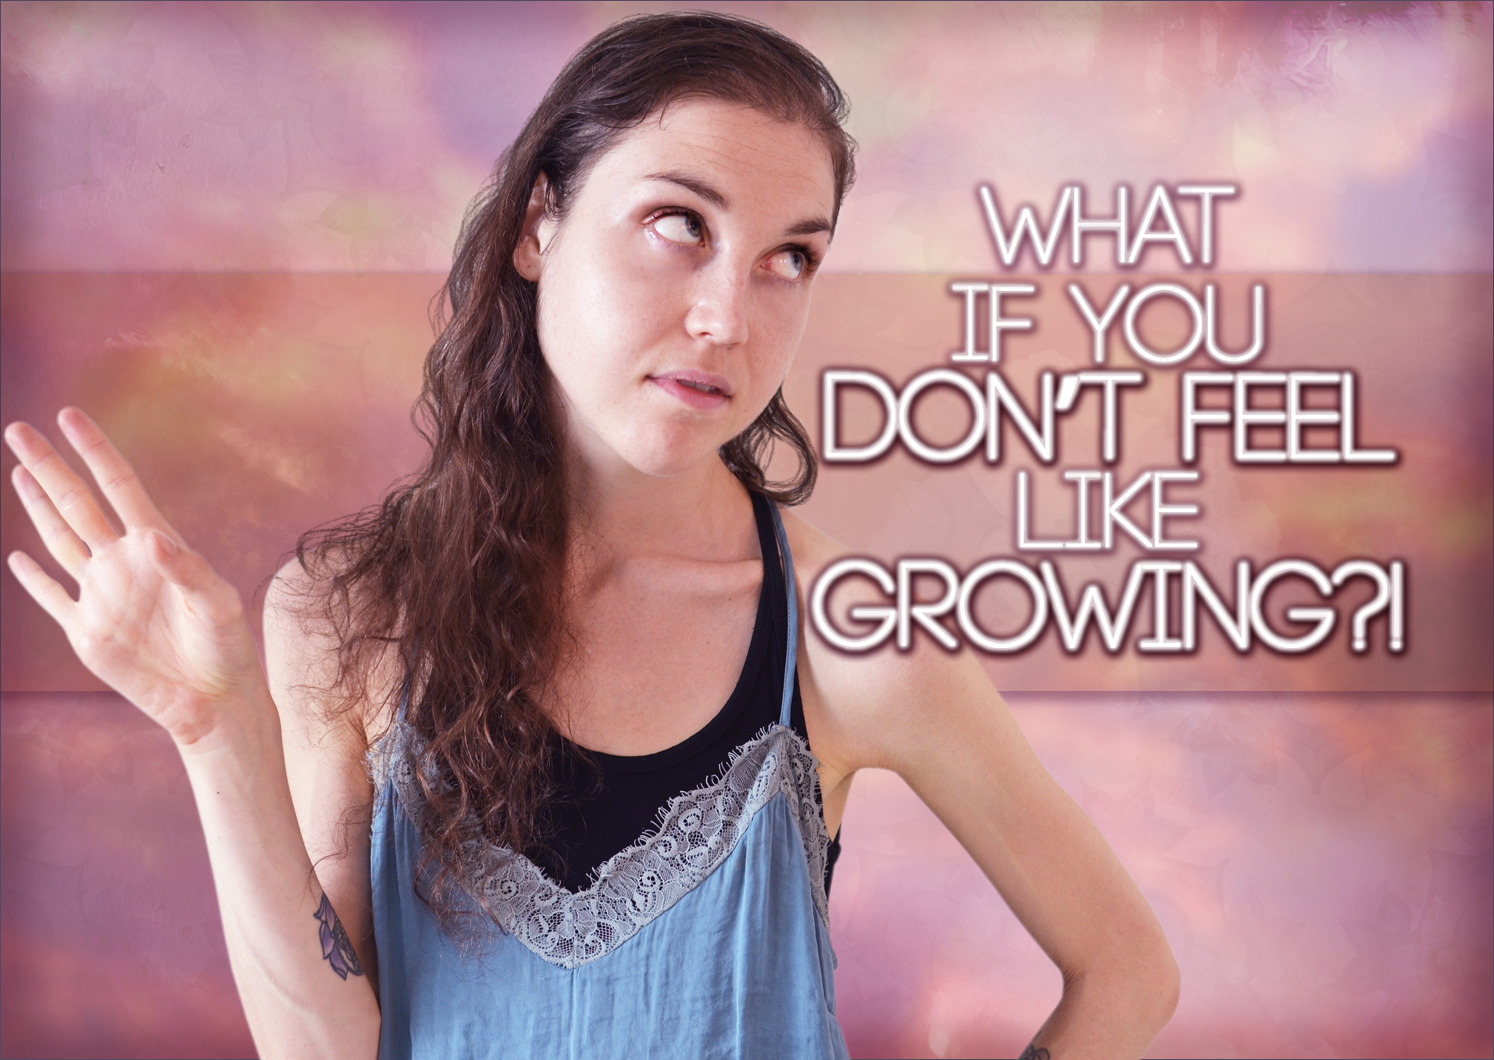 What If You Don't FEEL Like GROWING?!